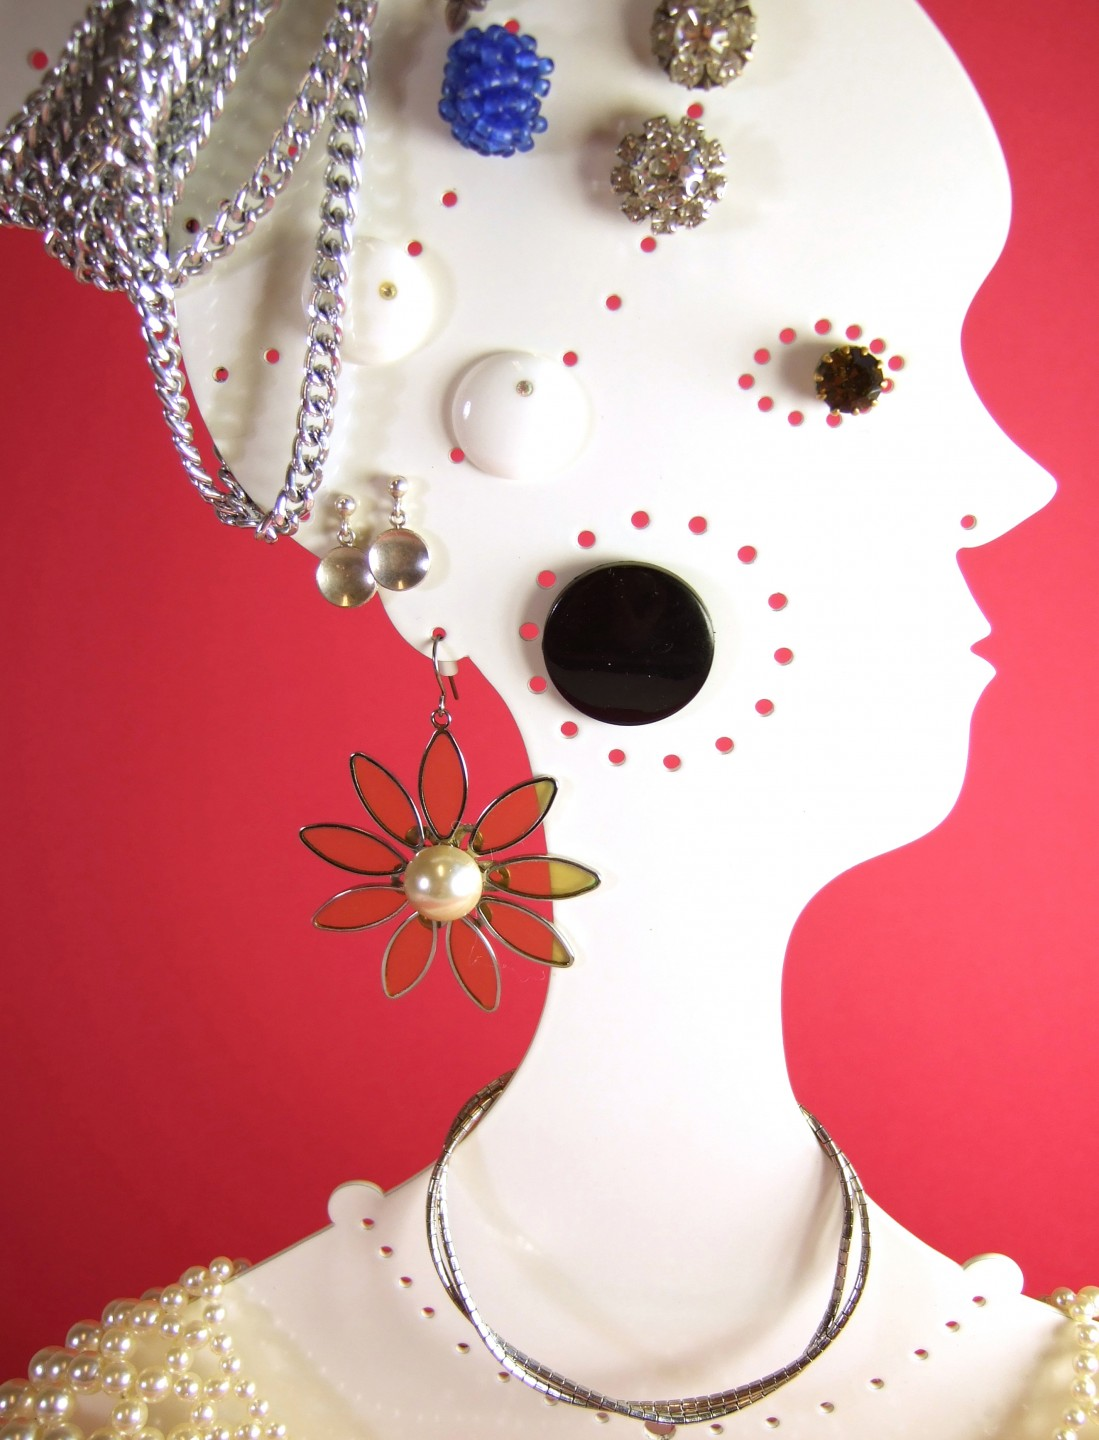 Jewellery doll - close up